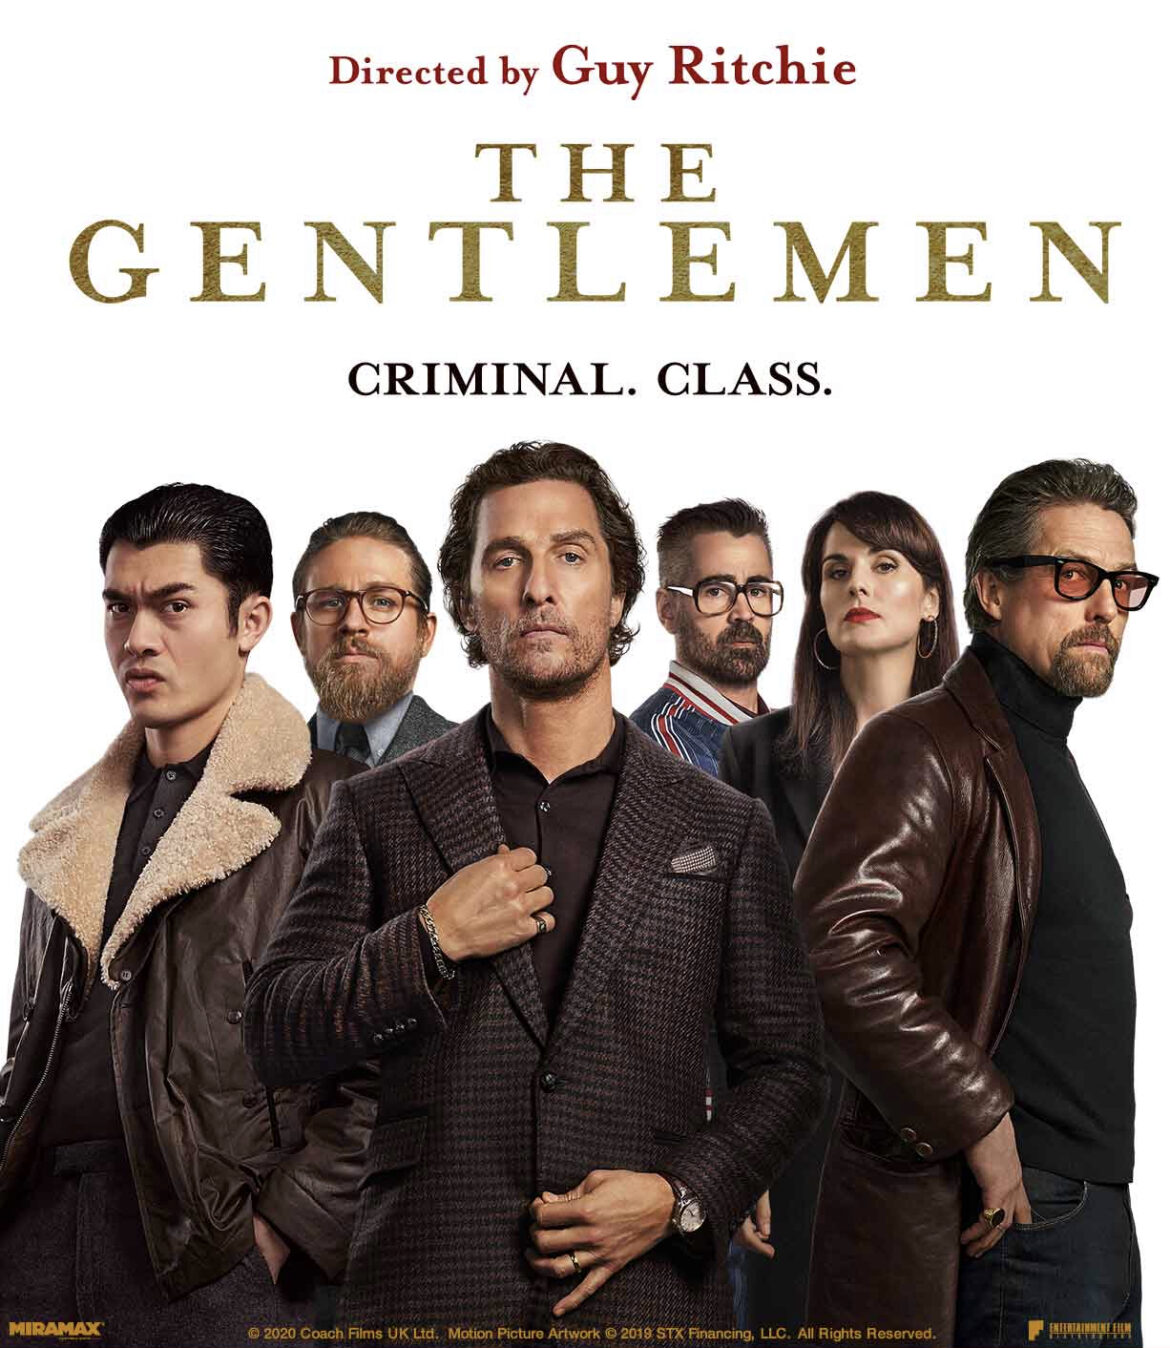 Read about the cast, plot and more about the movie The Gentlemen